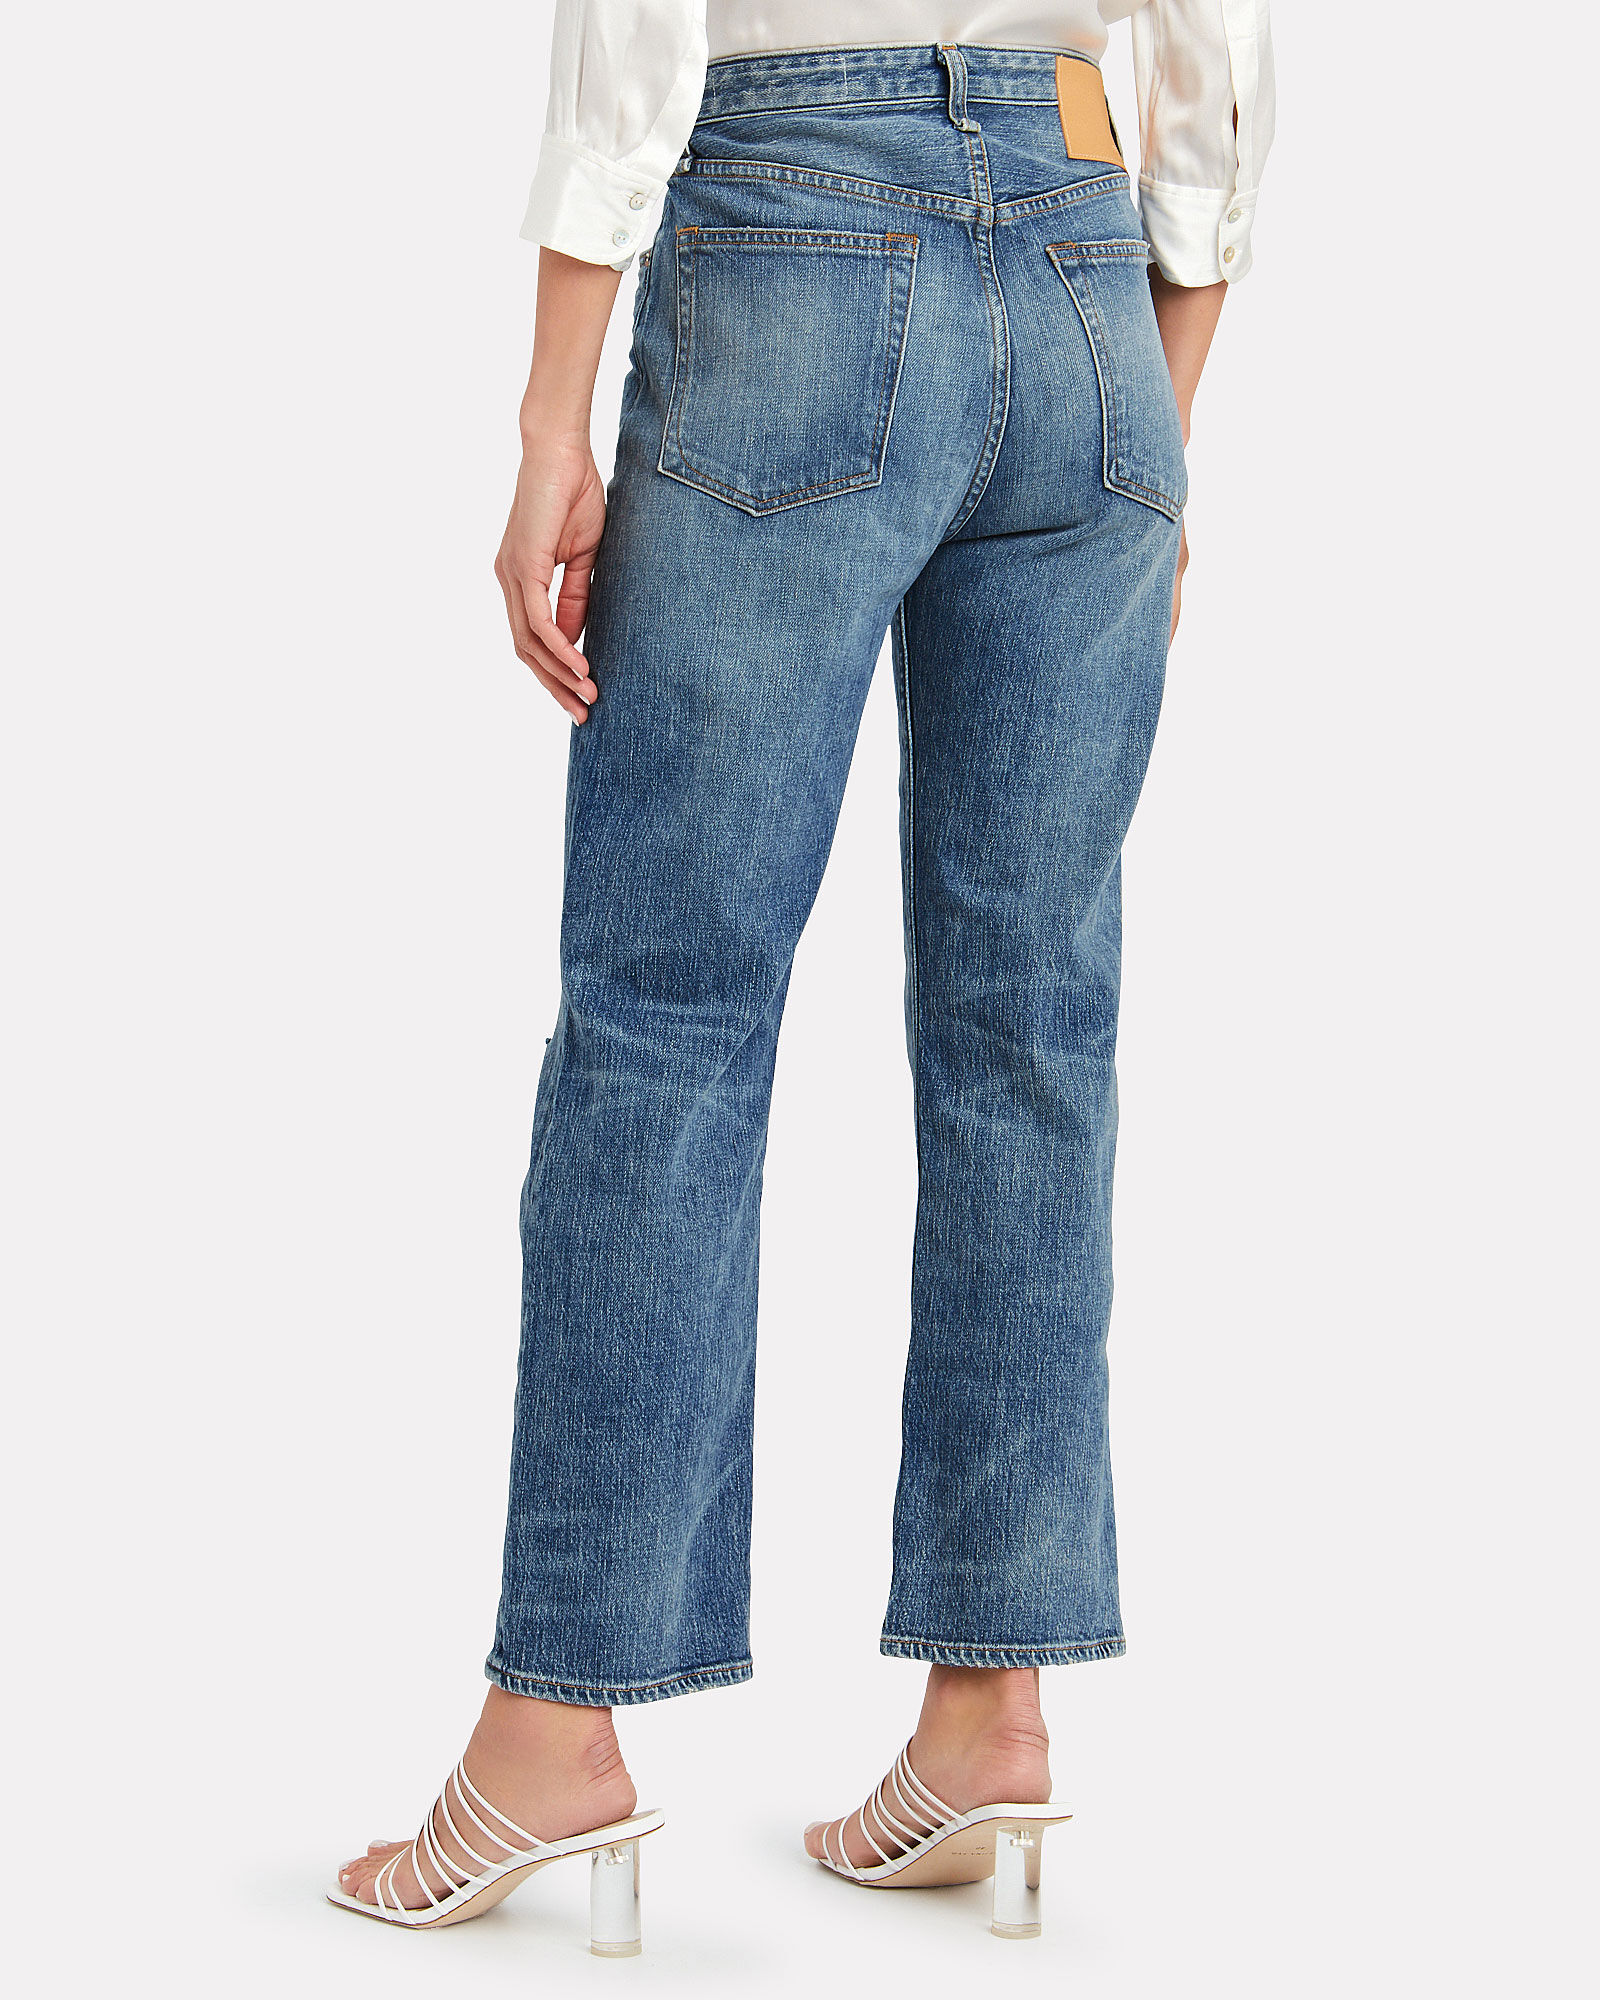 Maya High-Rise Straight Jeans, DENIM-LT, hi-res